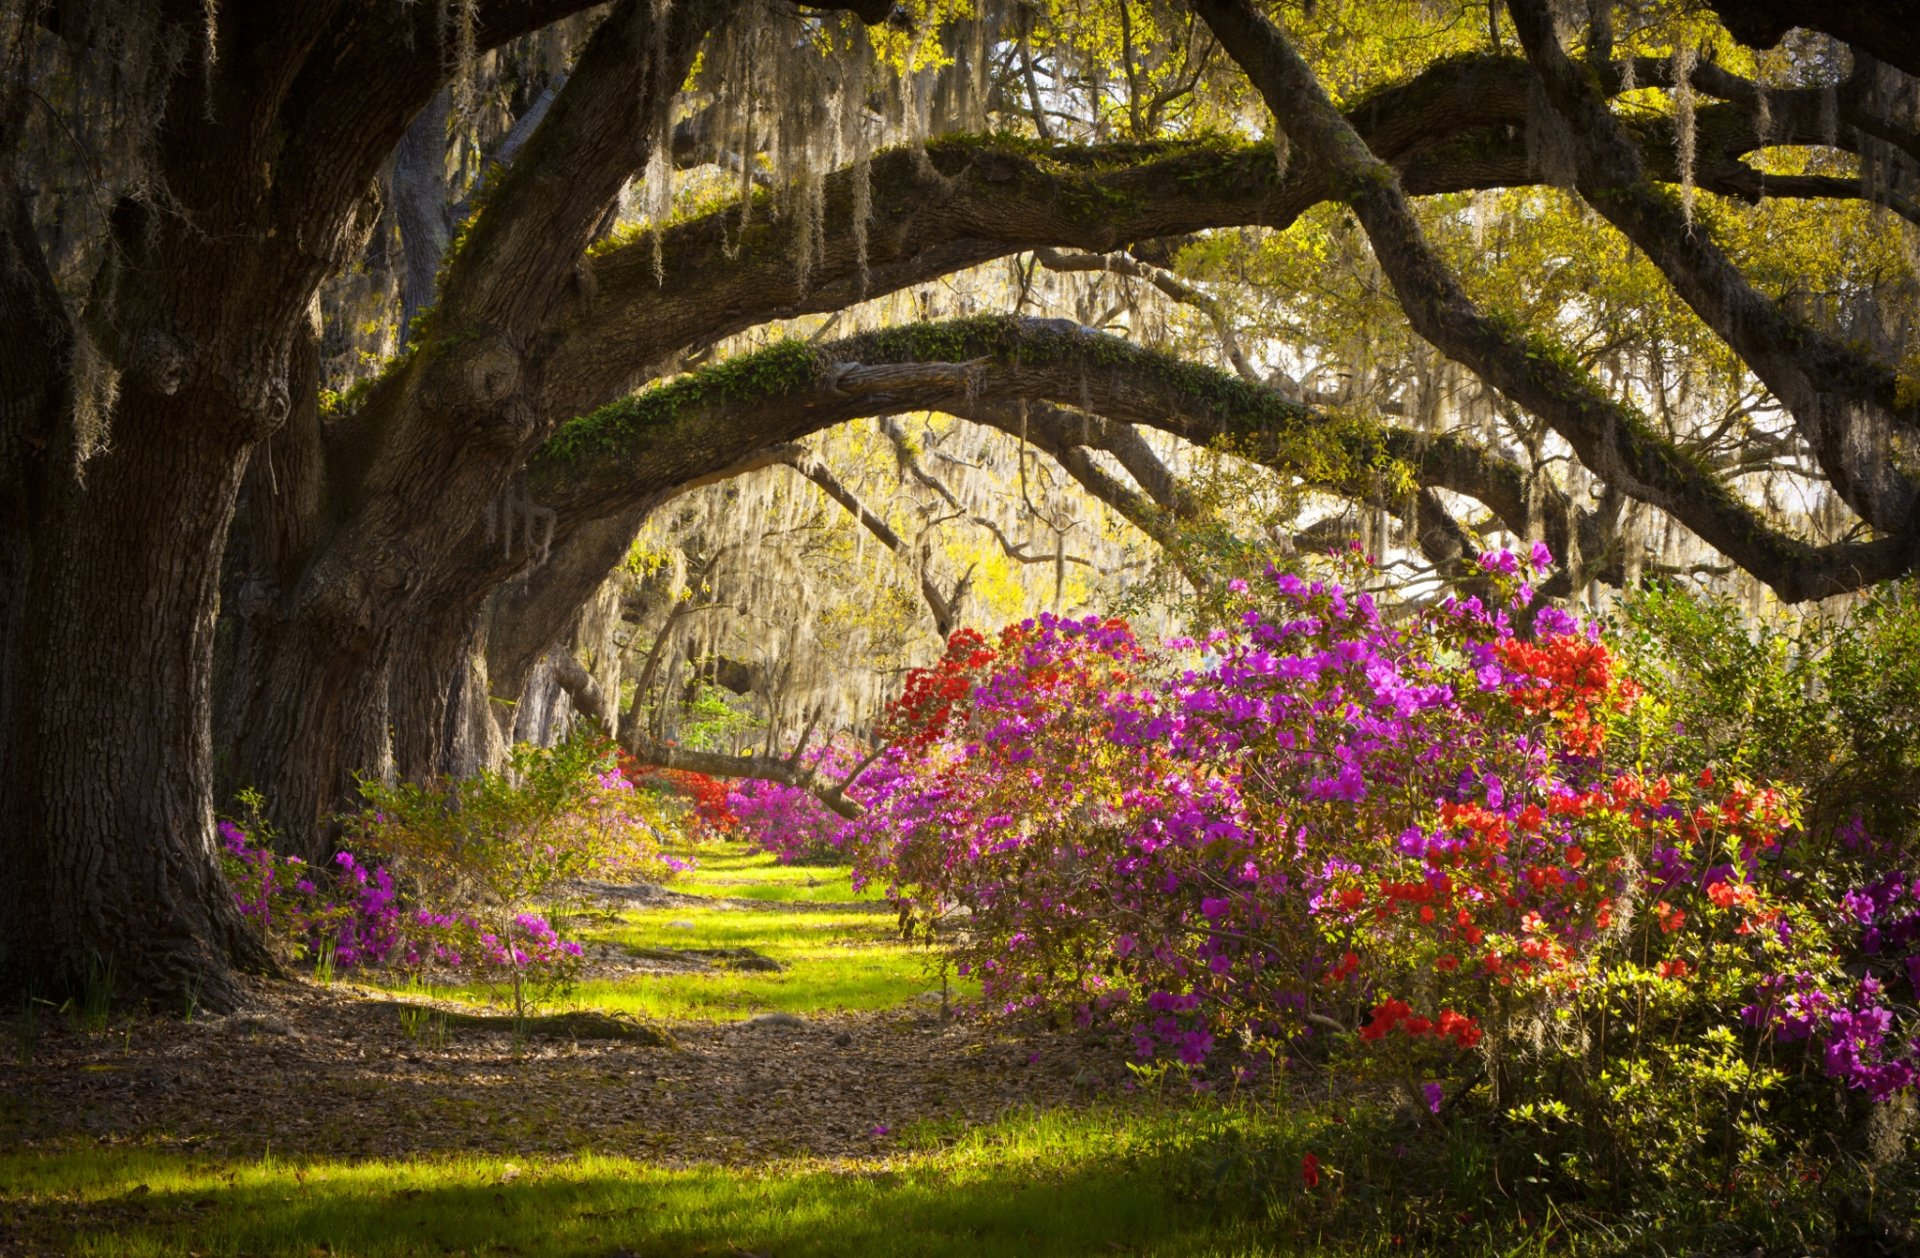 Earth - Magnolia  Tree South Carolina Azalea Flower Landscape Charleston Magnolia Plantation Wallpaper